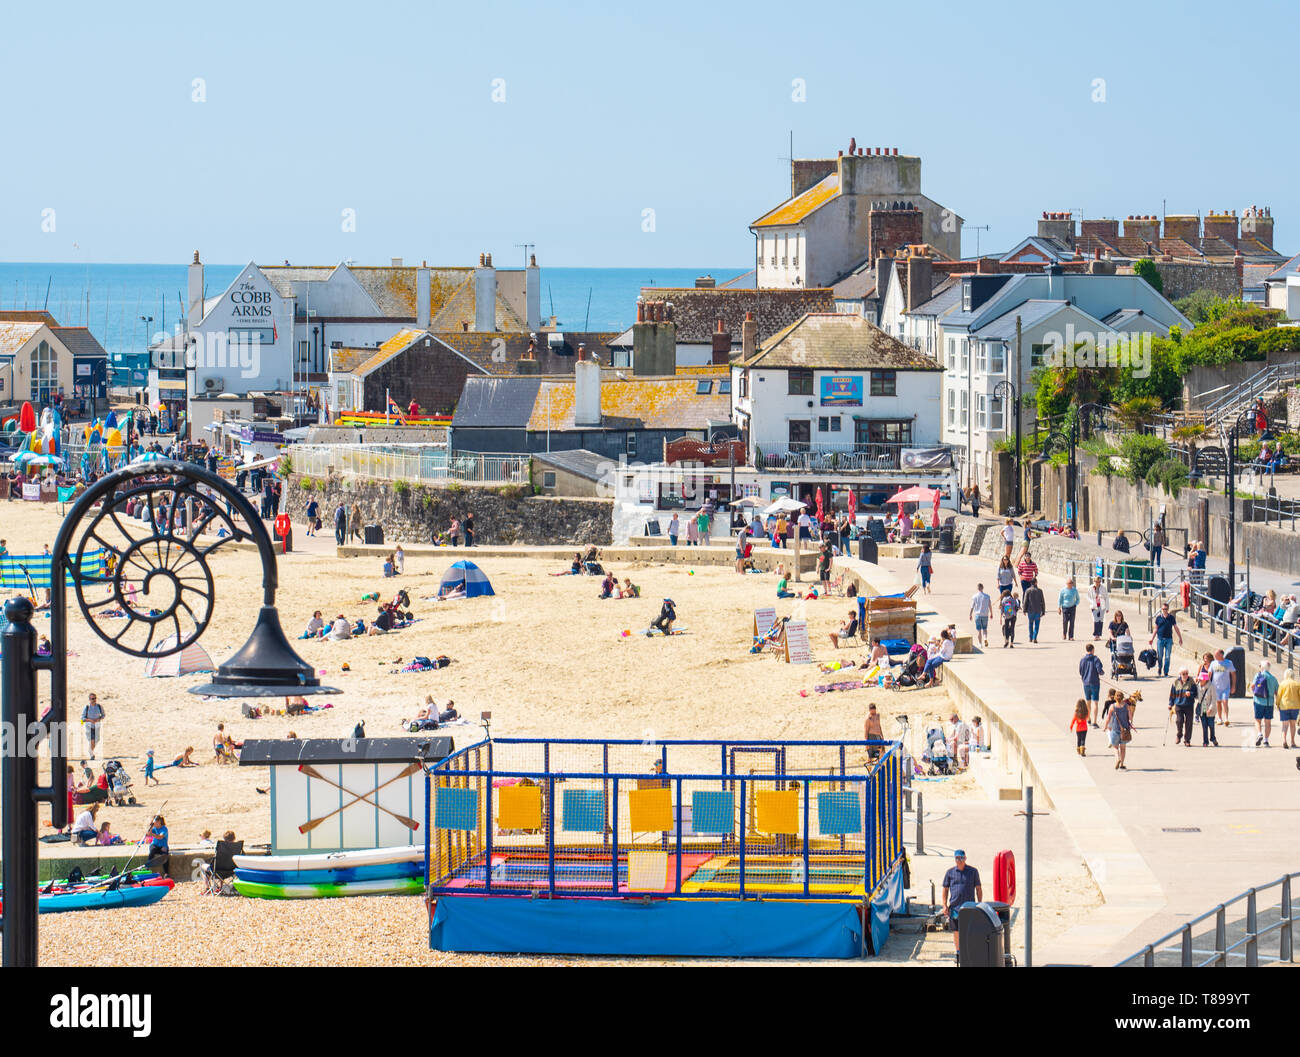 Lyme Regis, Dorset, UK. 12th May 2019. UK Weather: Visitors and beach goers enjoy the picturesque beach at the seaside resort of Lyme Regis on a hot and sunny Sunday.  Temperatures are set to soar with highs of 25 degrees celsius forecast for the coming week. Credit: Celia McMahon/Alamy Live News. - Stock Image